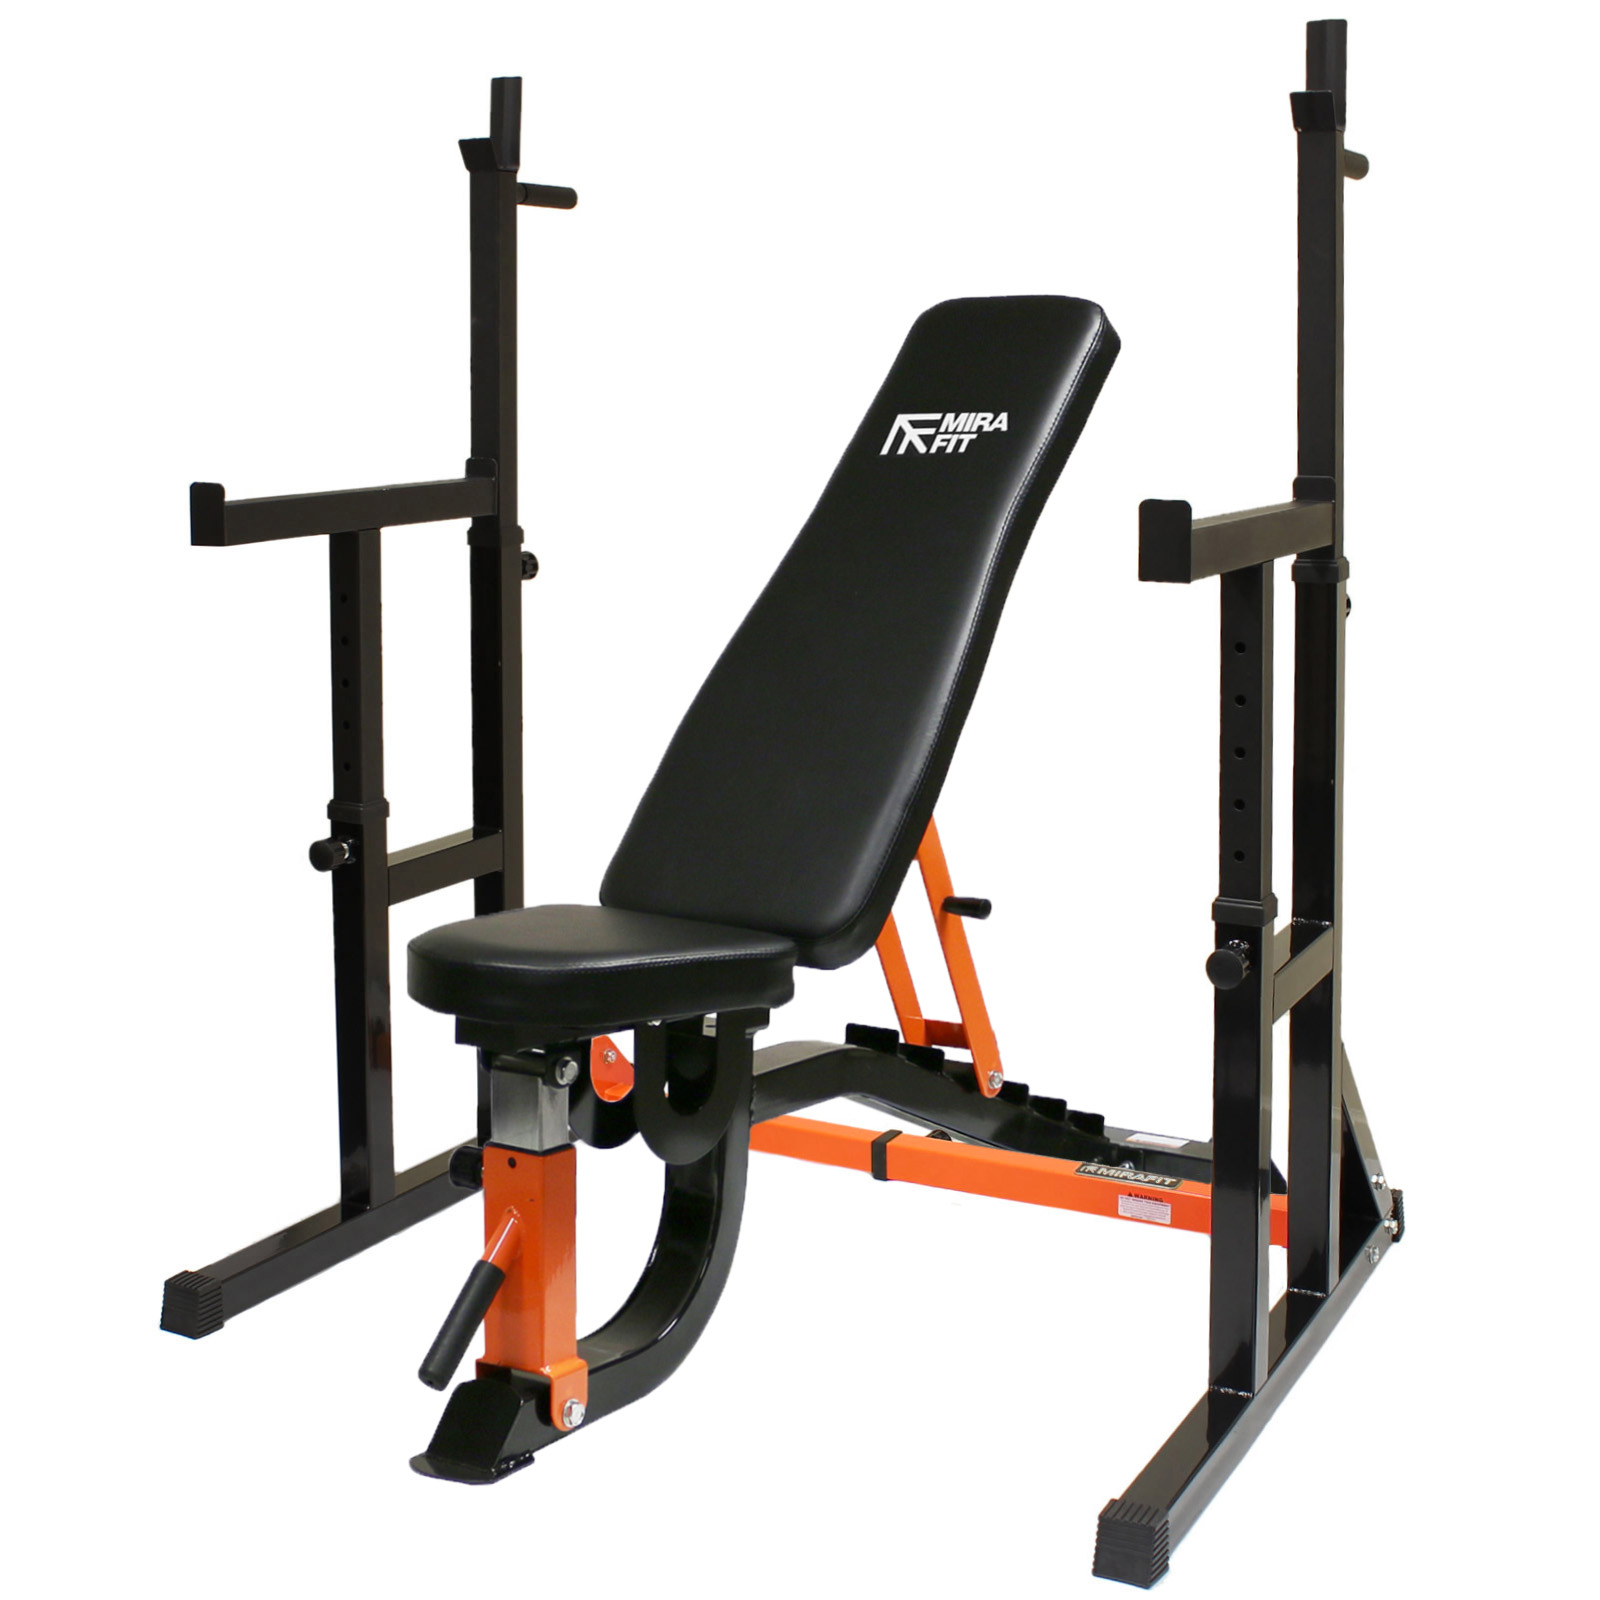 Mirafit hd adjustable fid weight bench squat rack dip for A squat rack